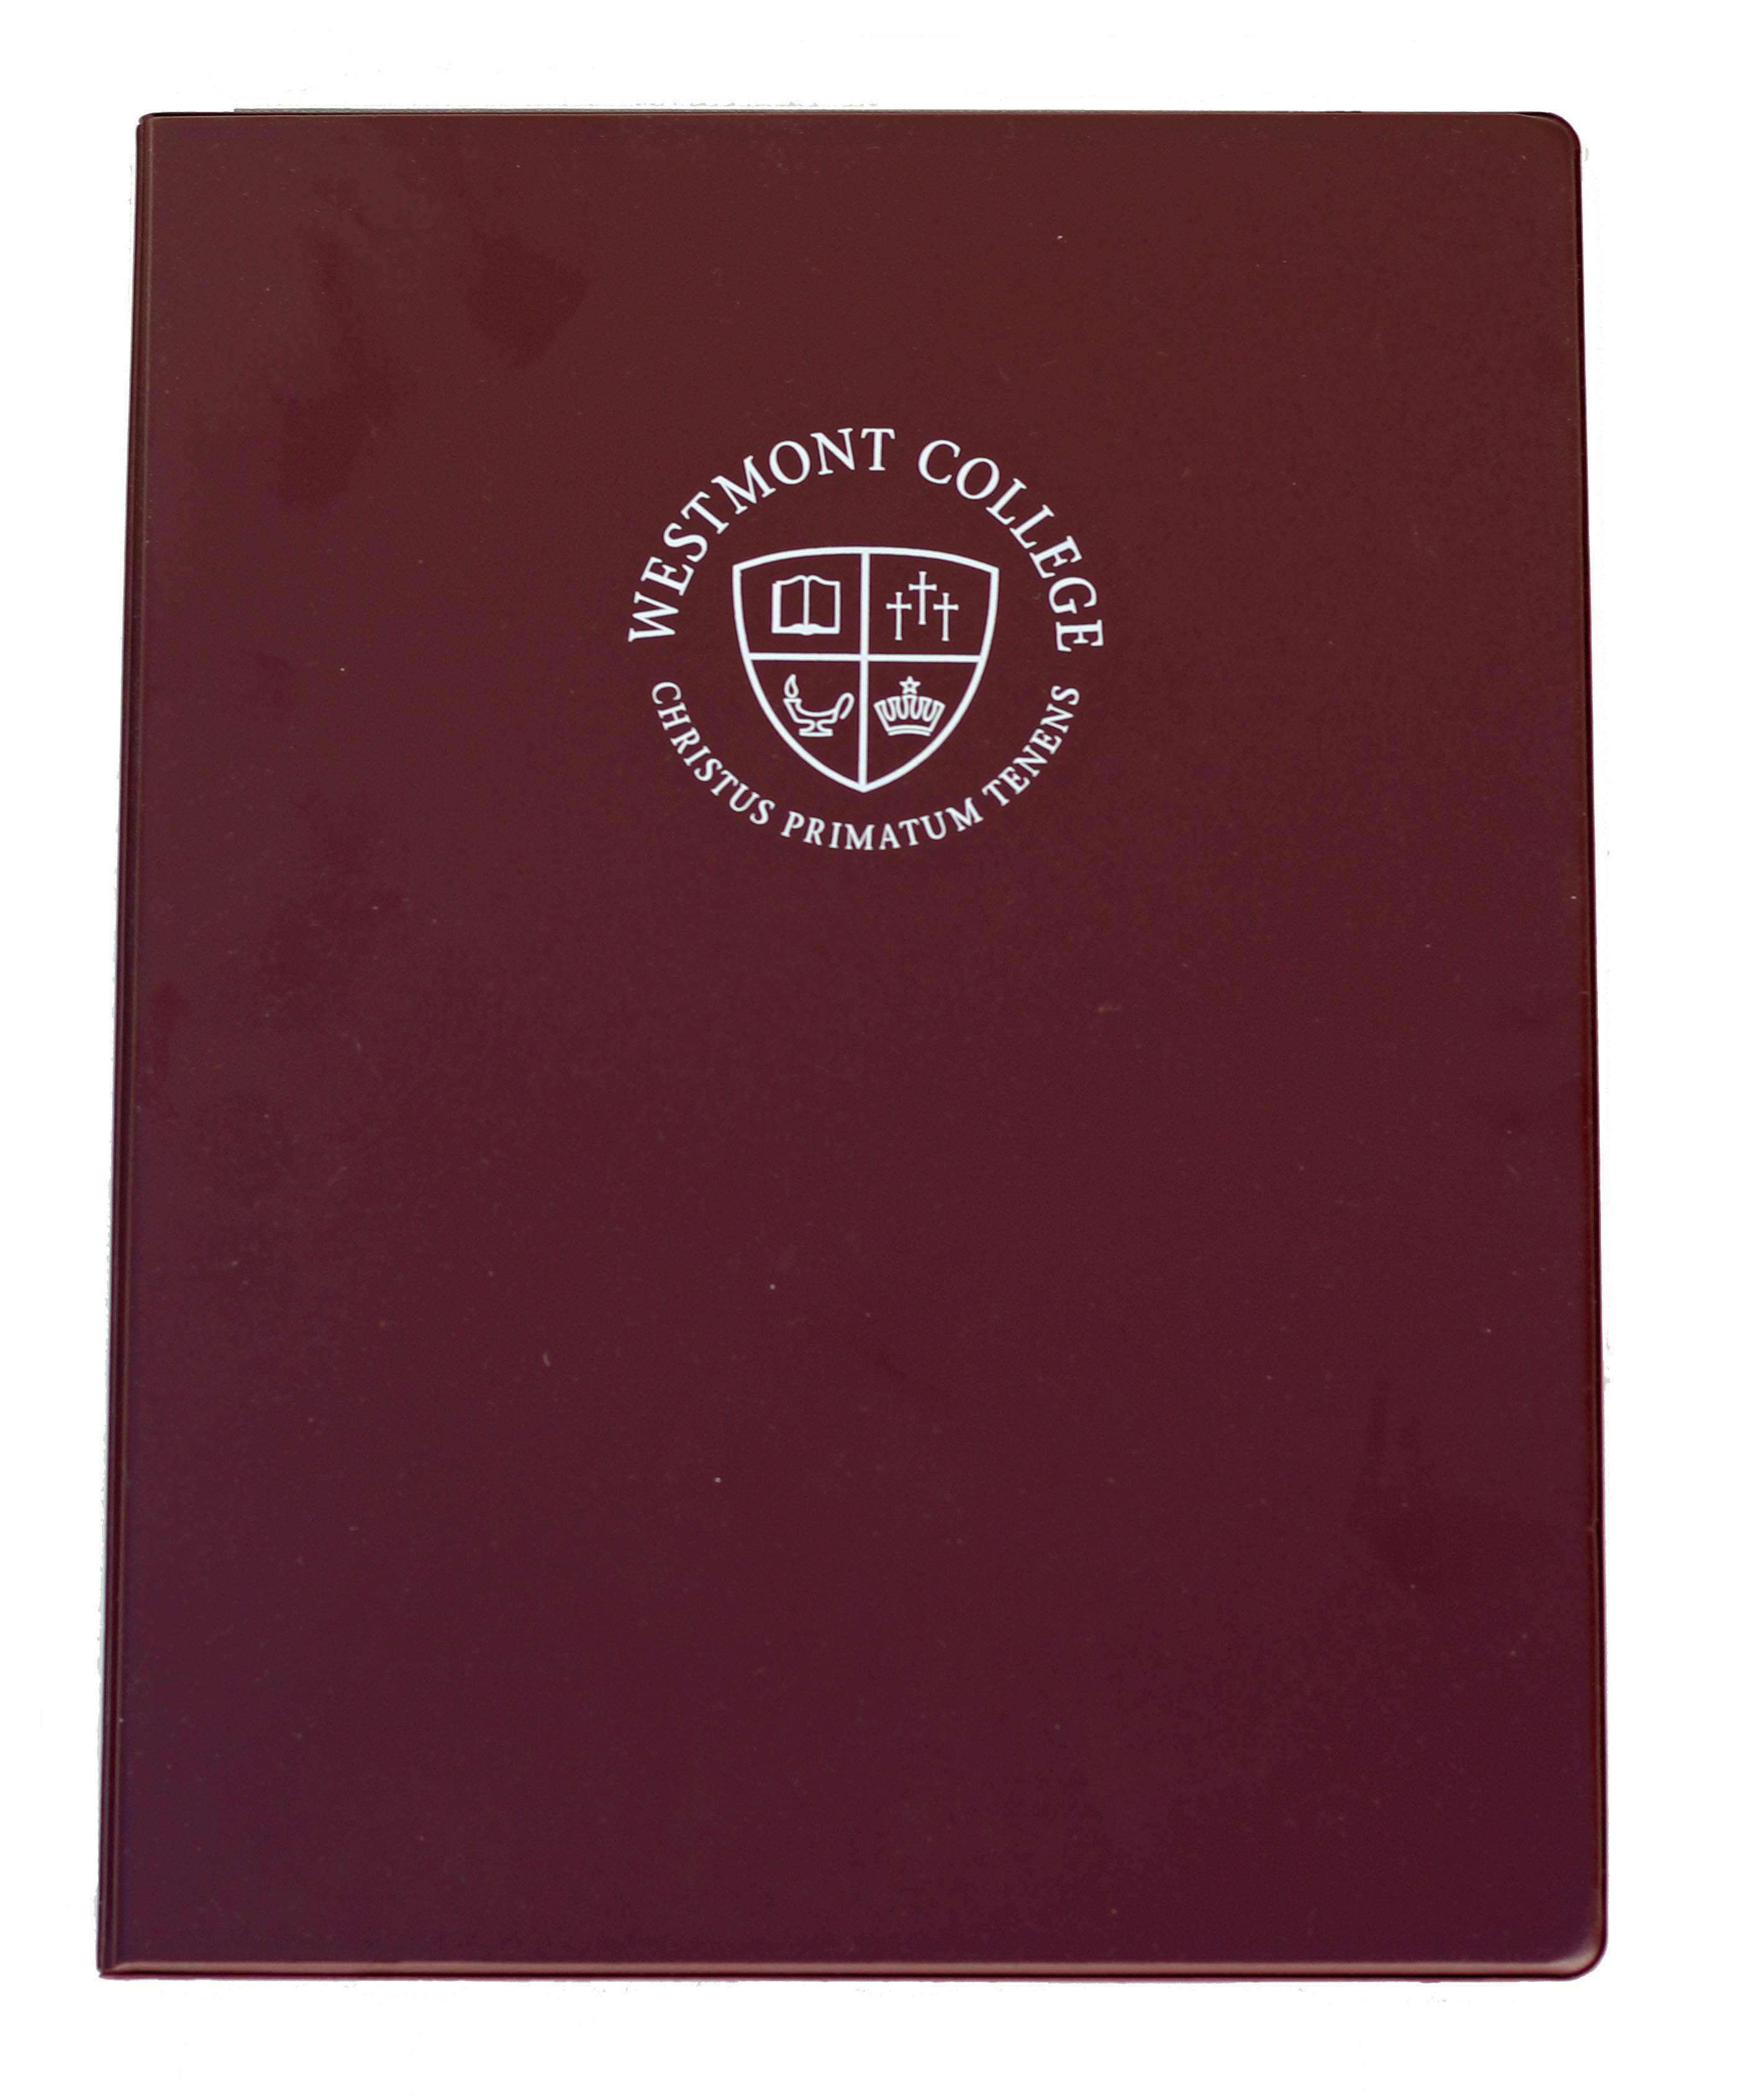 Image for the Four Point Westmont Seal Portfolio Notebook product